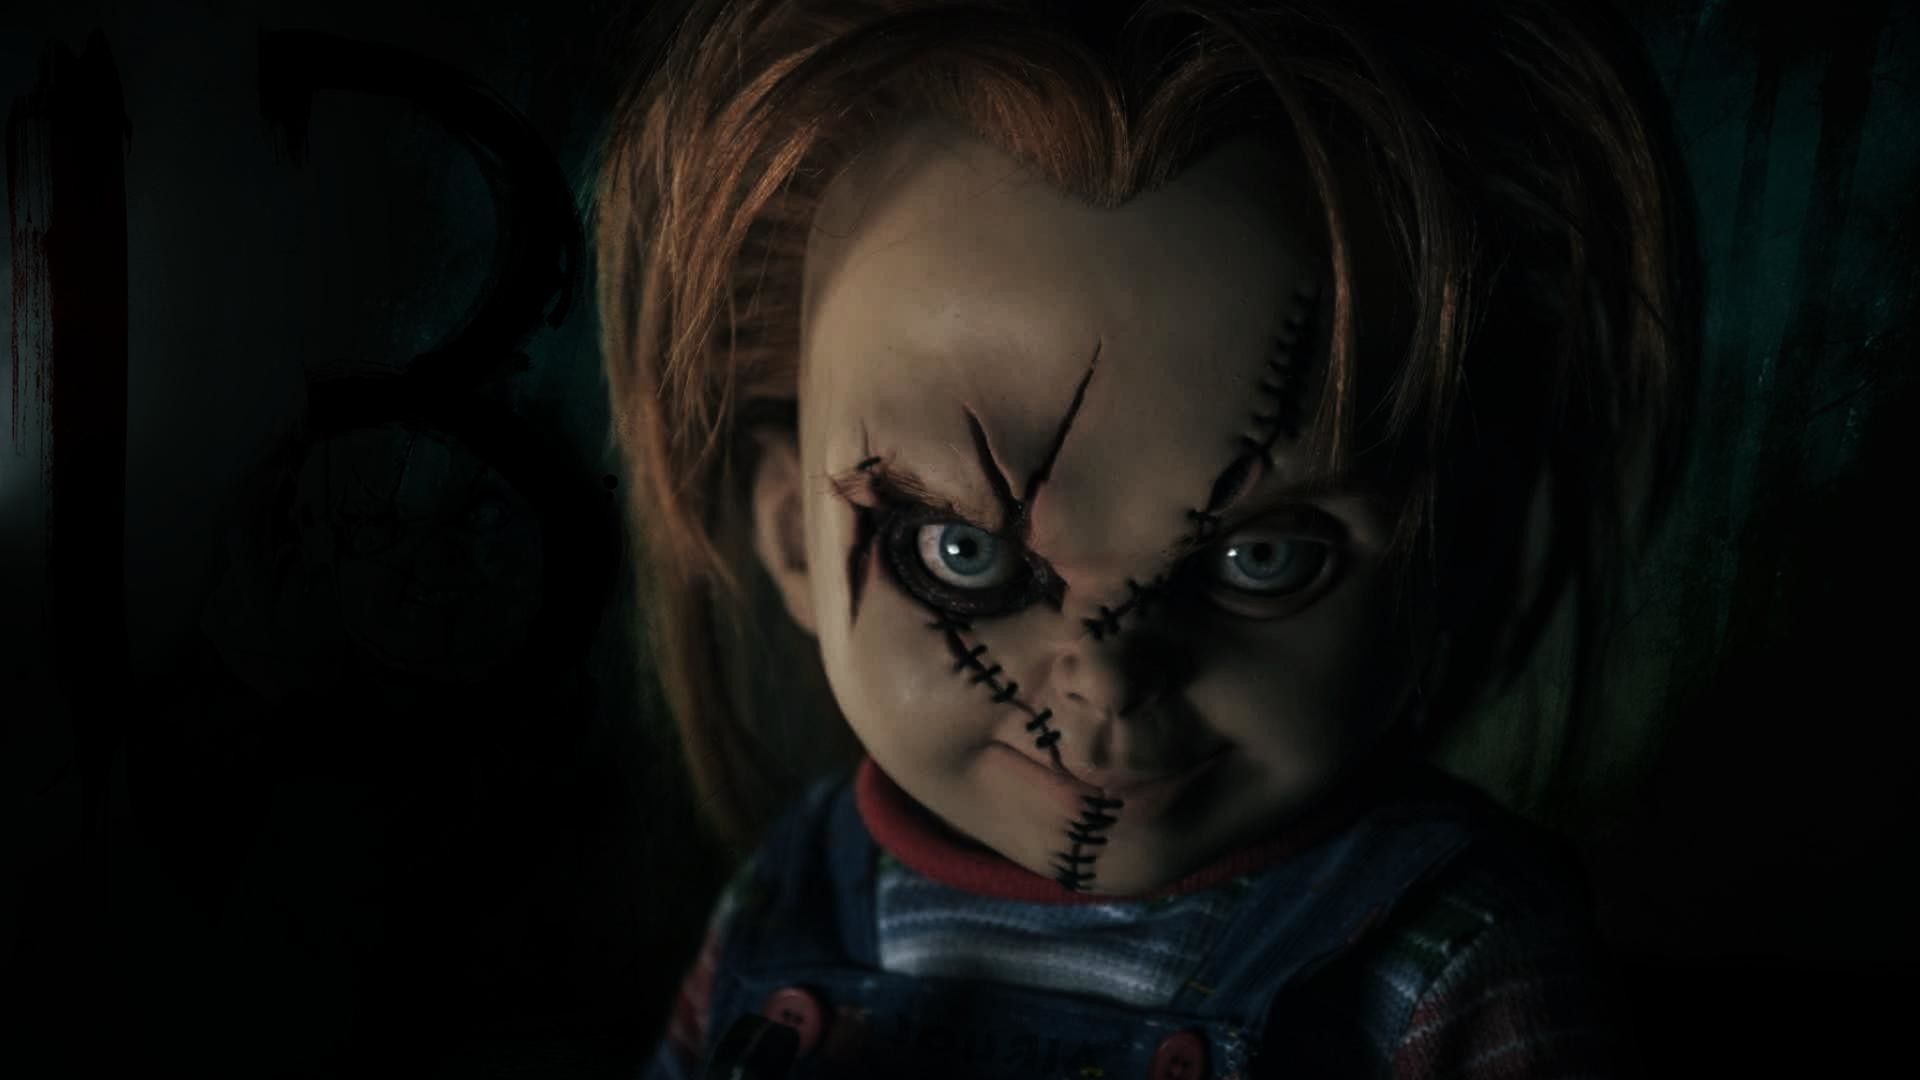 1920x1080 Images For Chucky Doll Wallpaper Chucky Doll Chucky Horror Characters